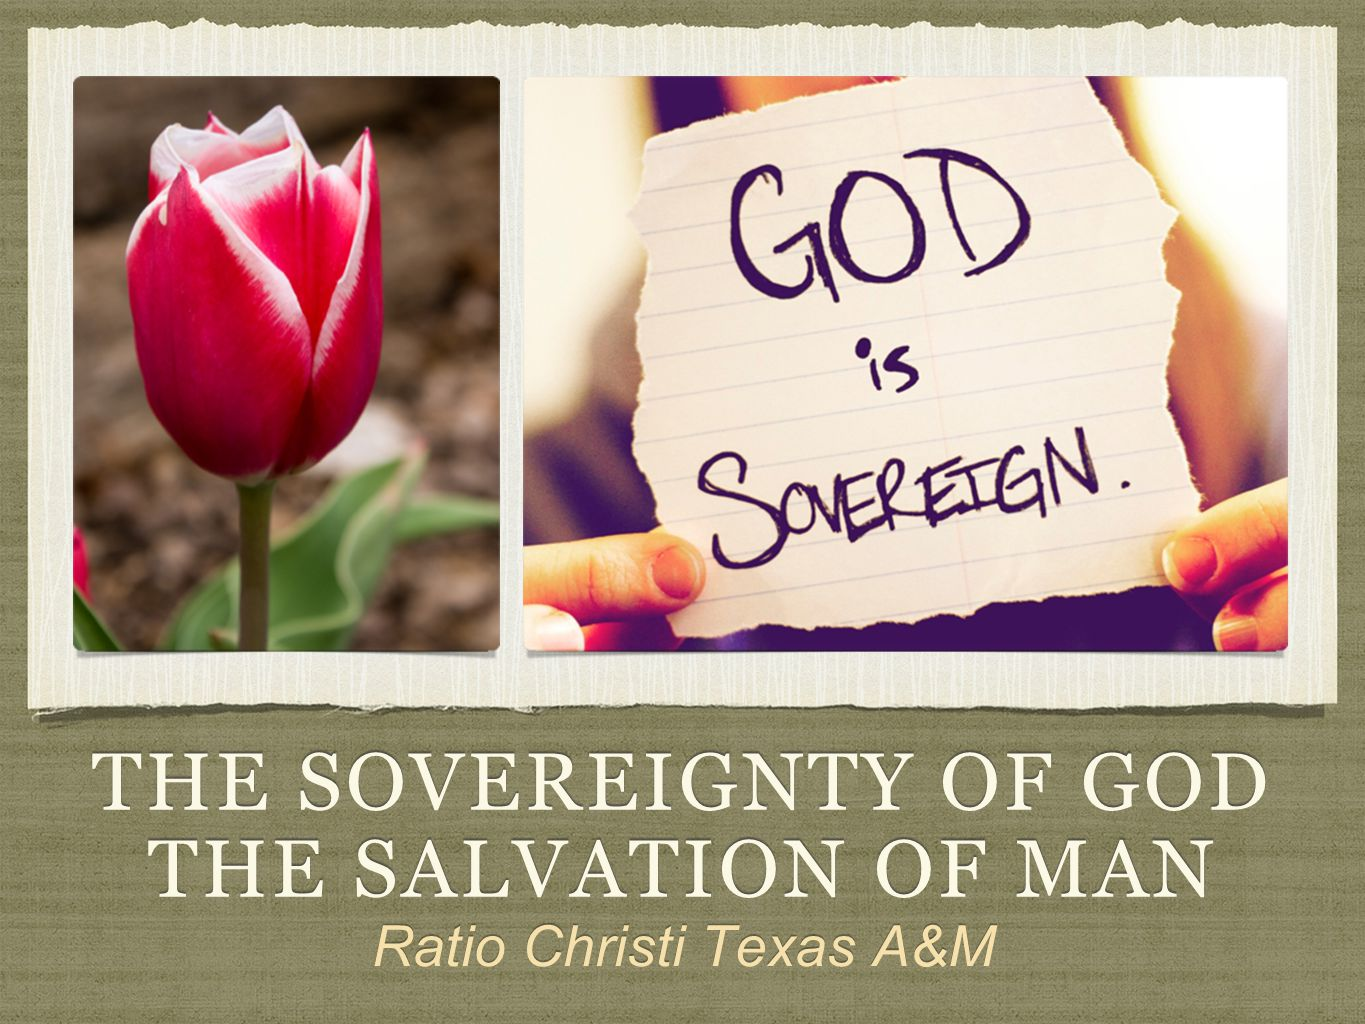 THE SOVEREIGNTY OF GOD THE SALVATION OF MAN Ratio Christi Texas A&M